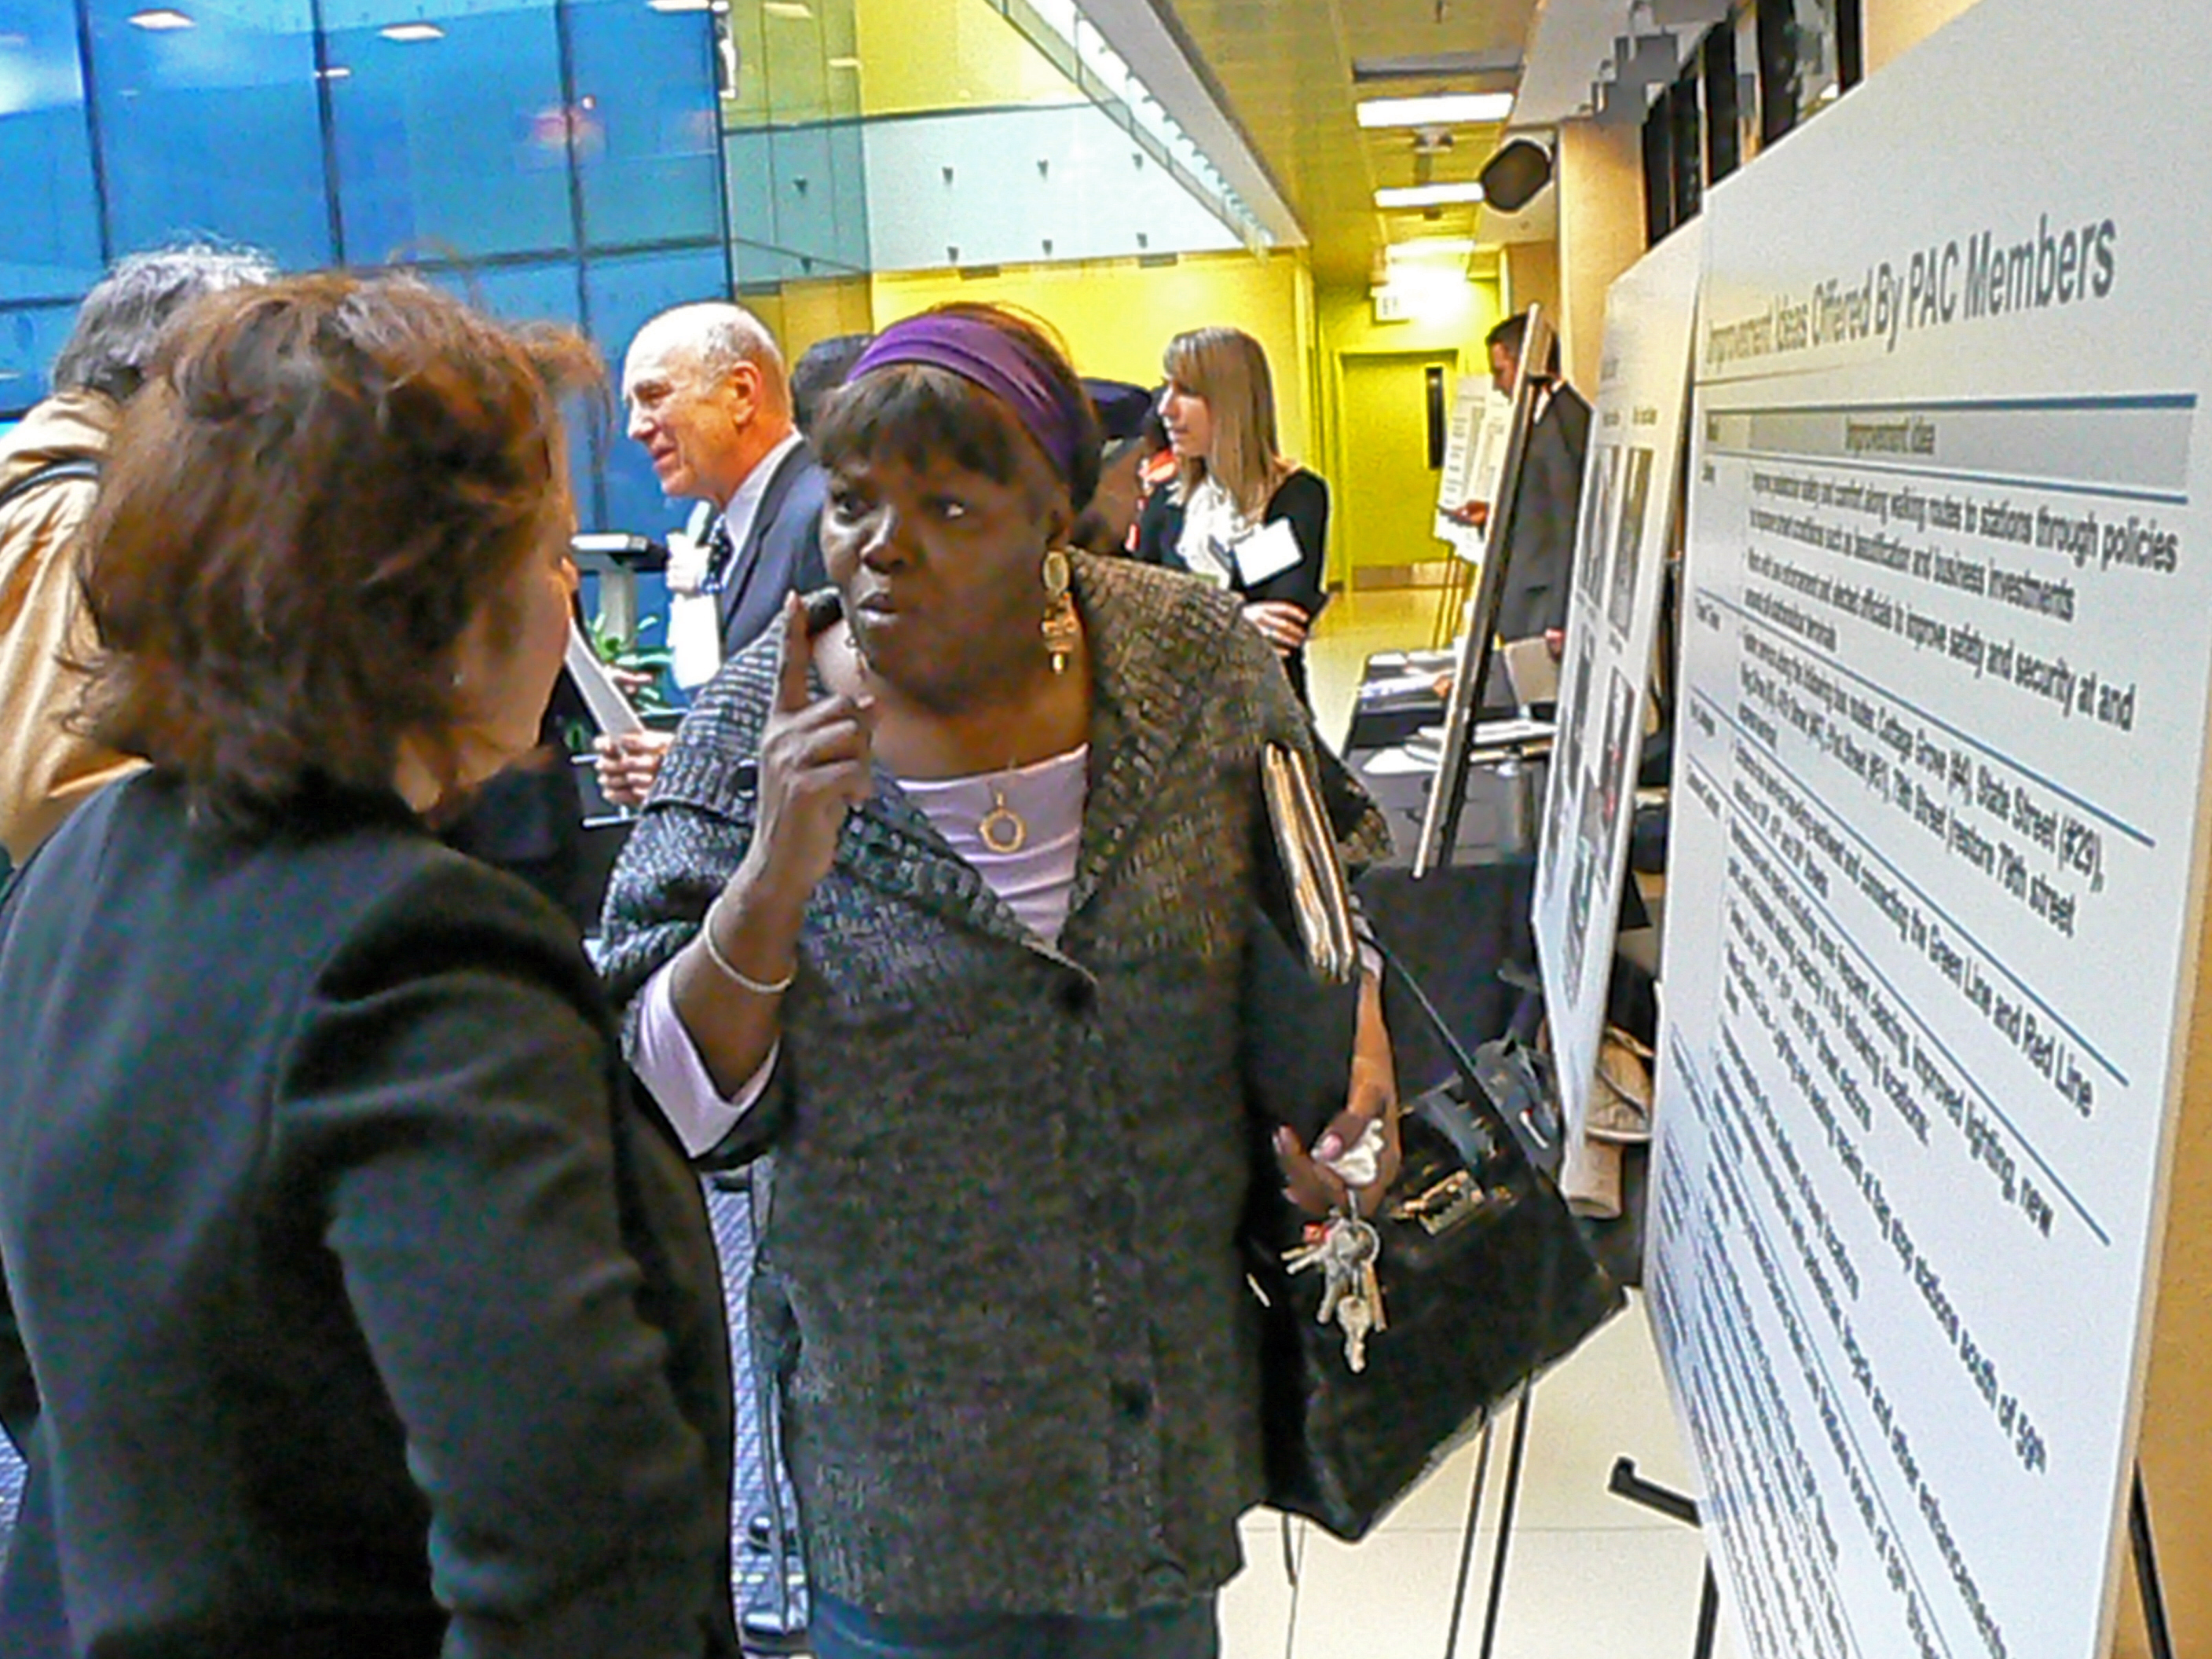 Sandra Bevins, executive director of the 51st Street Business Association, discusses transit improvements ideas, during a meeting hosted by Chicago Department of Transportation.